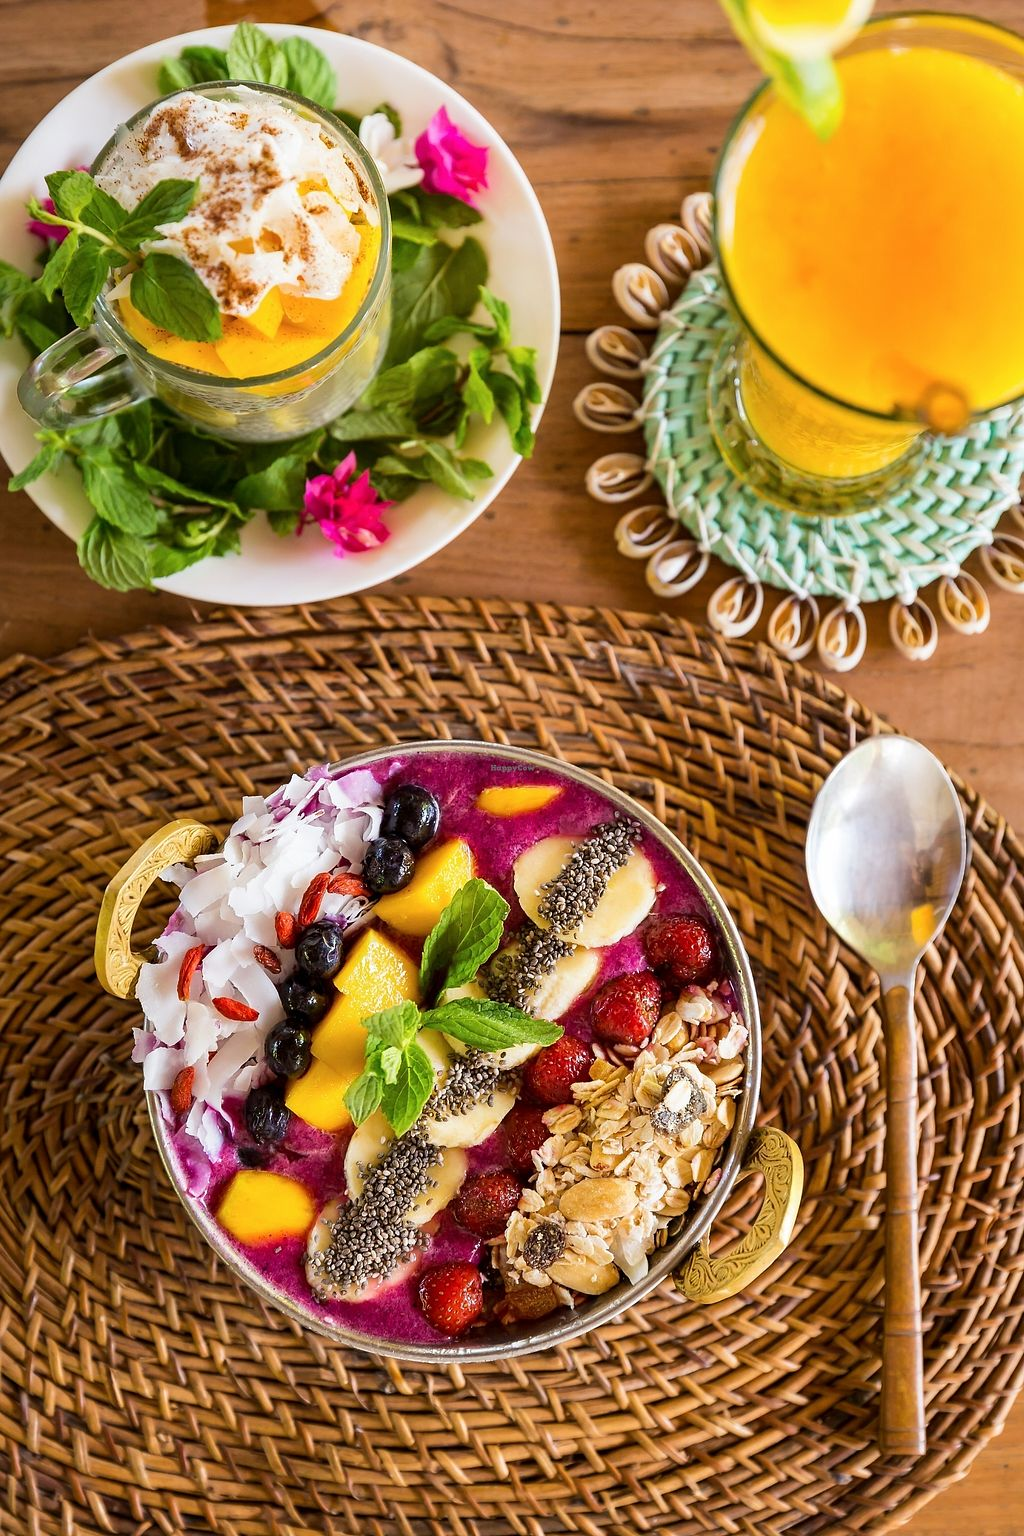 """Photo of Tigerlillys  by <a href=""""/members/profile/sun_sea_and_sand"""">sun_sea_and_sand</a> <br/>Delicious Acai bowl (vegan), chia pudding (vegetarian, and vegan opt out of honey drizzle)   <br/> April 16, 2018  - <a href='/contact/abuse/image/117642/386638'>Report</a>"""